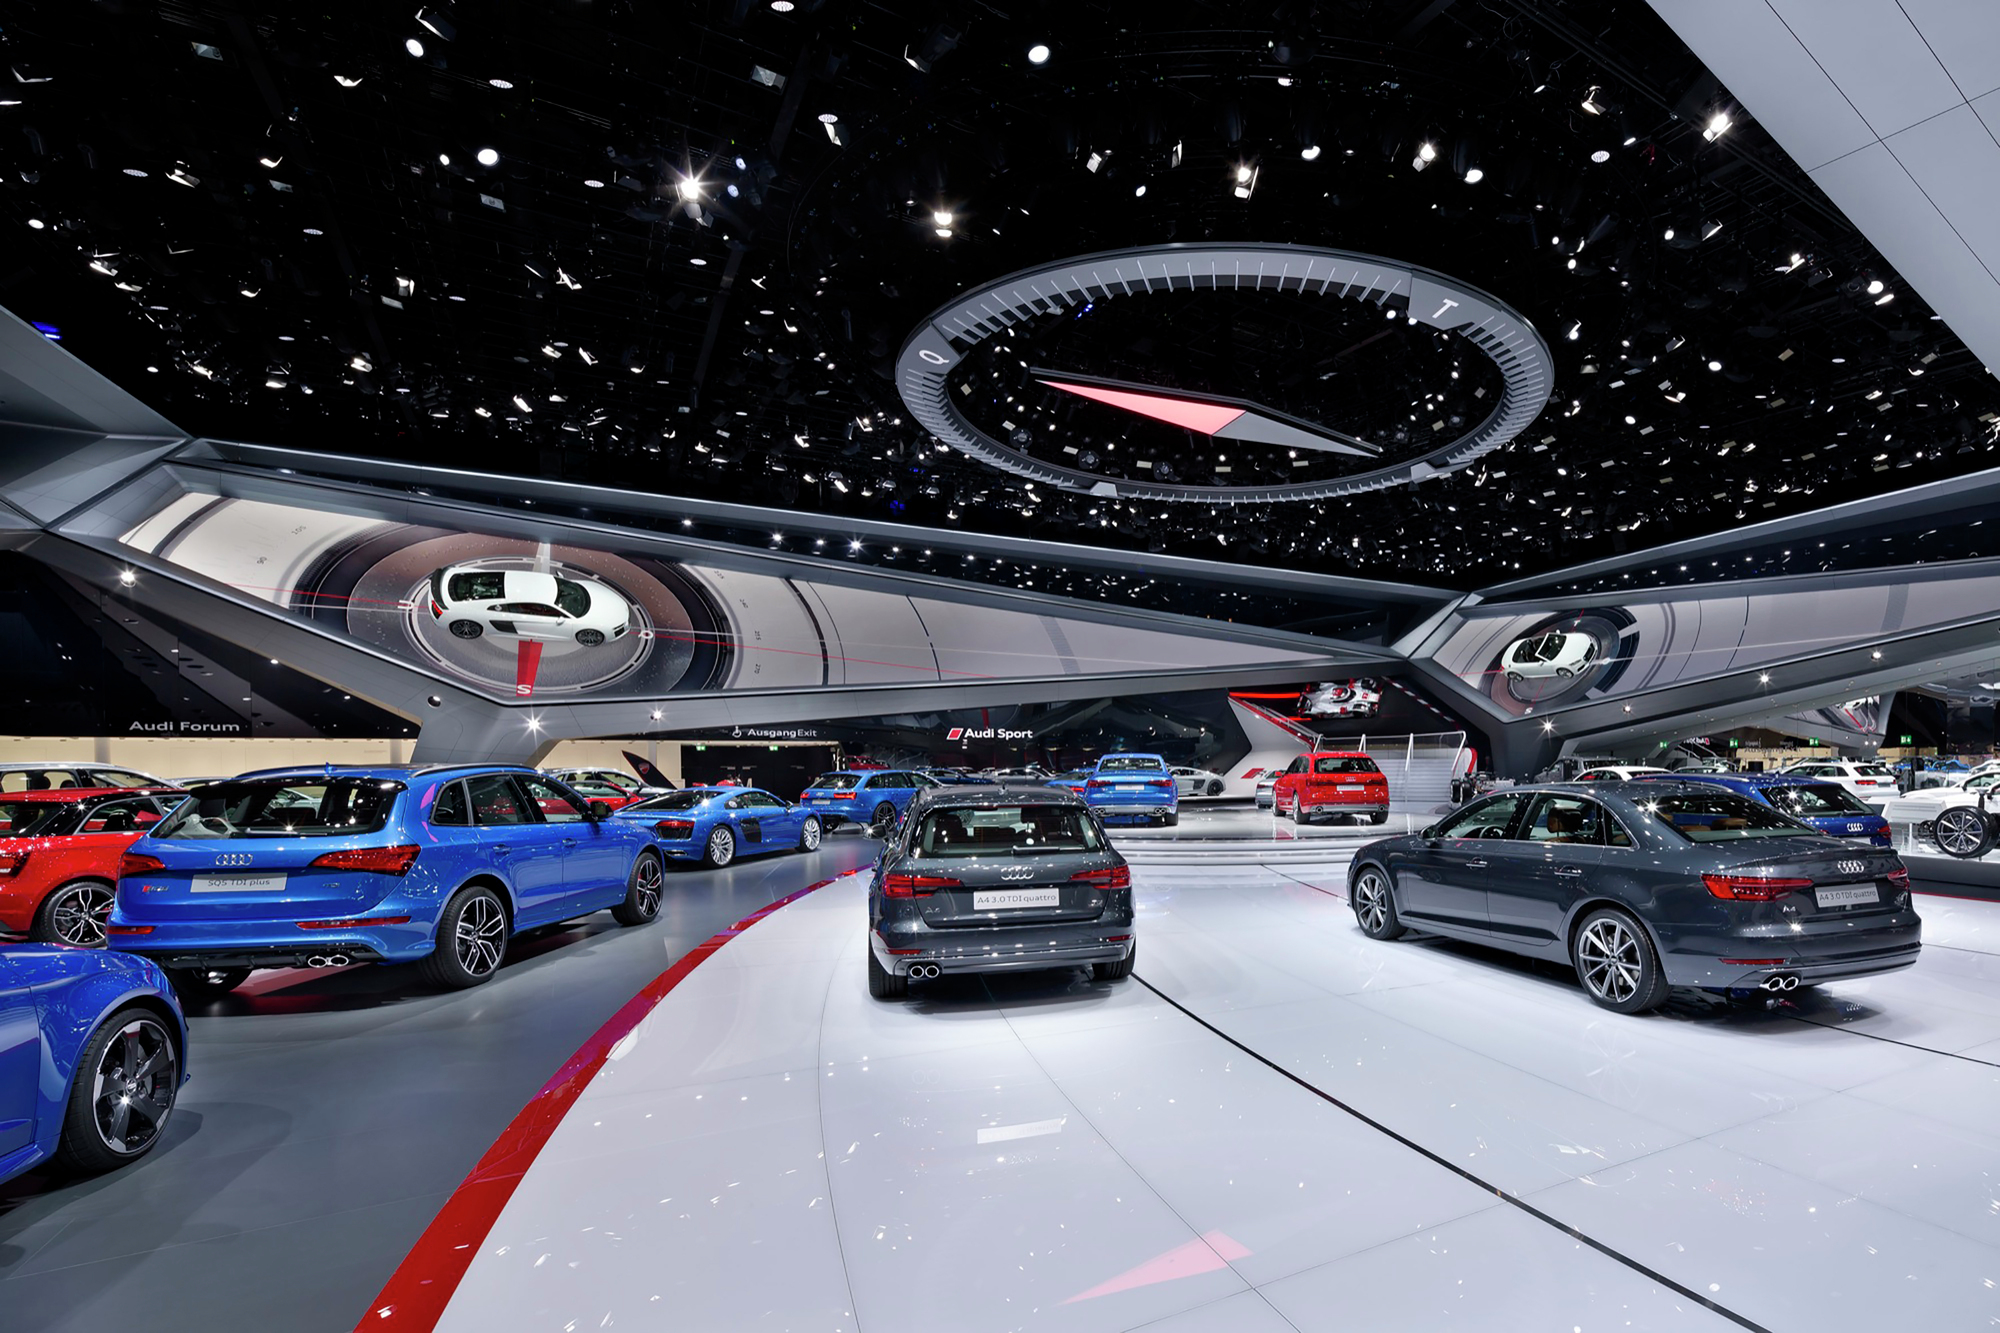 Mid Size Car >> Gallery of Audi Motor Show 2015 / SCHMIDHUBER - 6